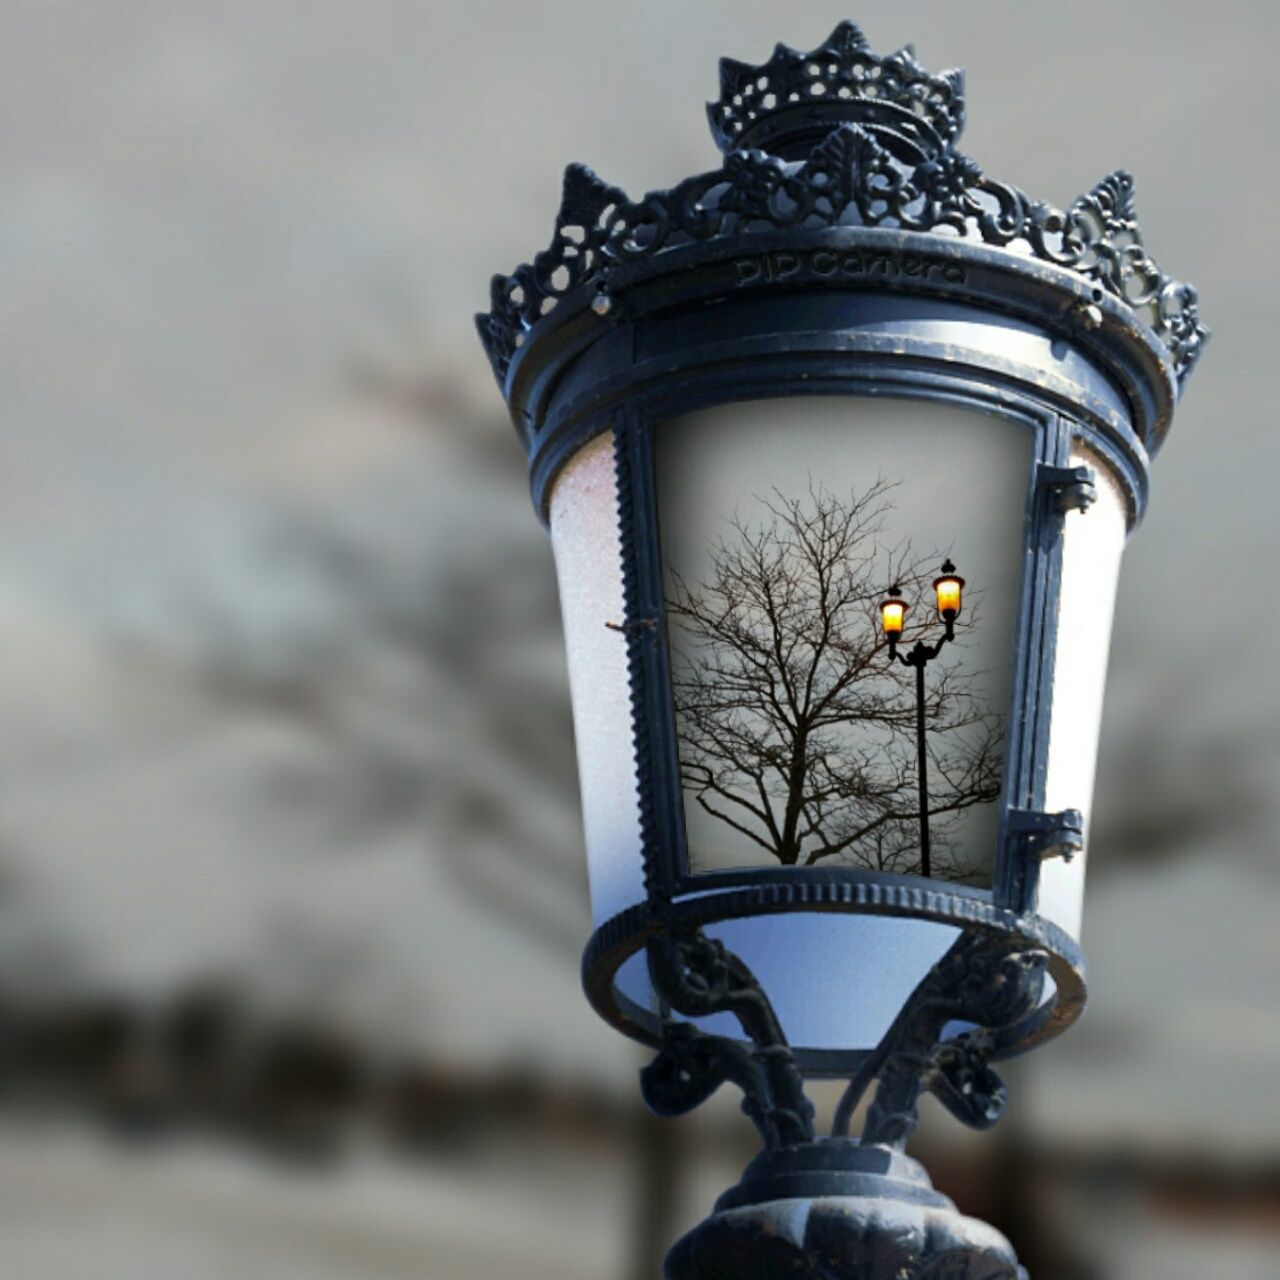 This Is My Art!!! Getting Inspired Getting Creative Bare Branches Lantern Winter Sky Amber Light From My Point Of View Things I Saw Today Showcase: January East Liverpool Ohio, USA My Hometown Point Of View